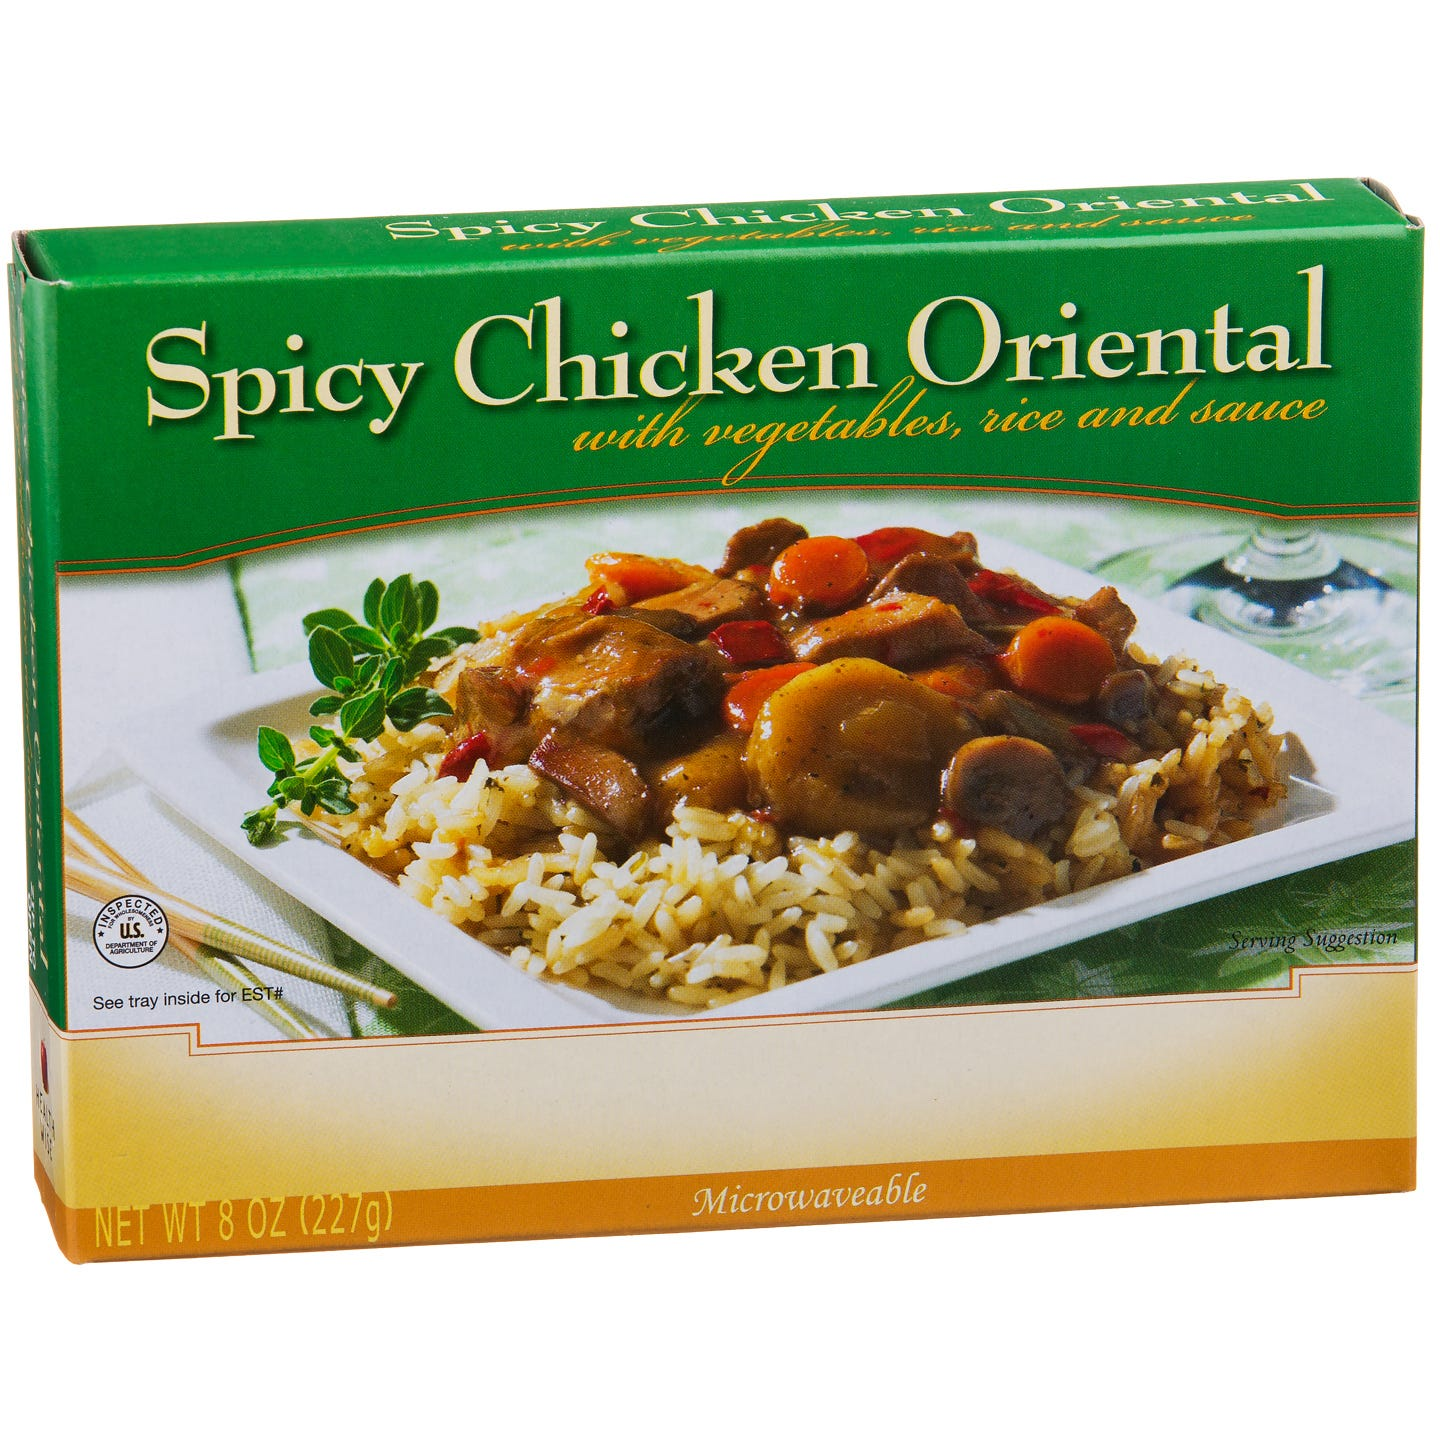 Low Calorie Meal Spicy Chicken Oriental 8 oz, BariWise - Rapid Diet Weight Loss Products Shop